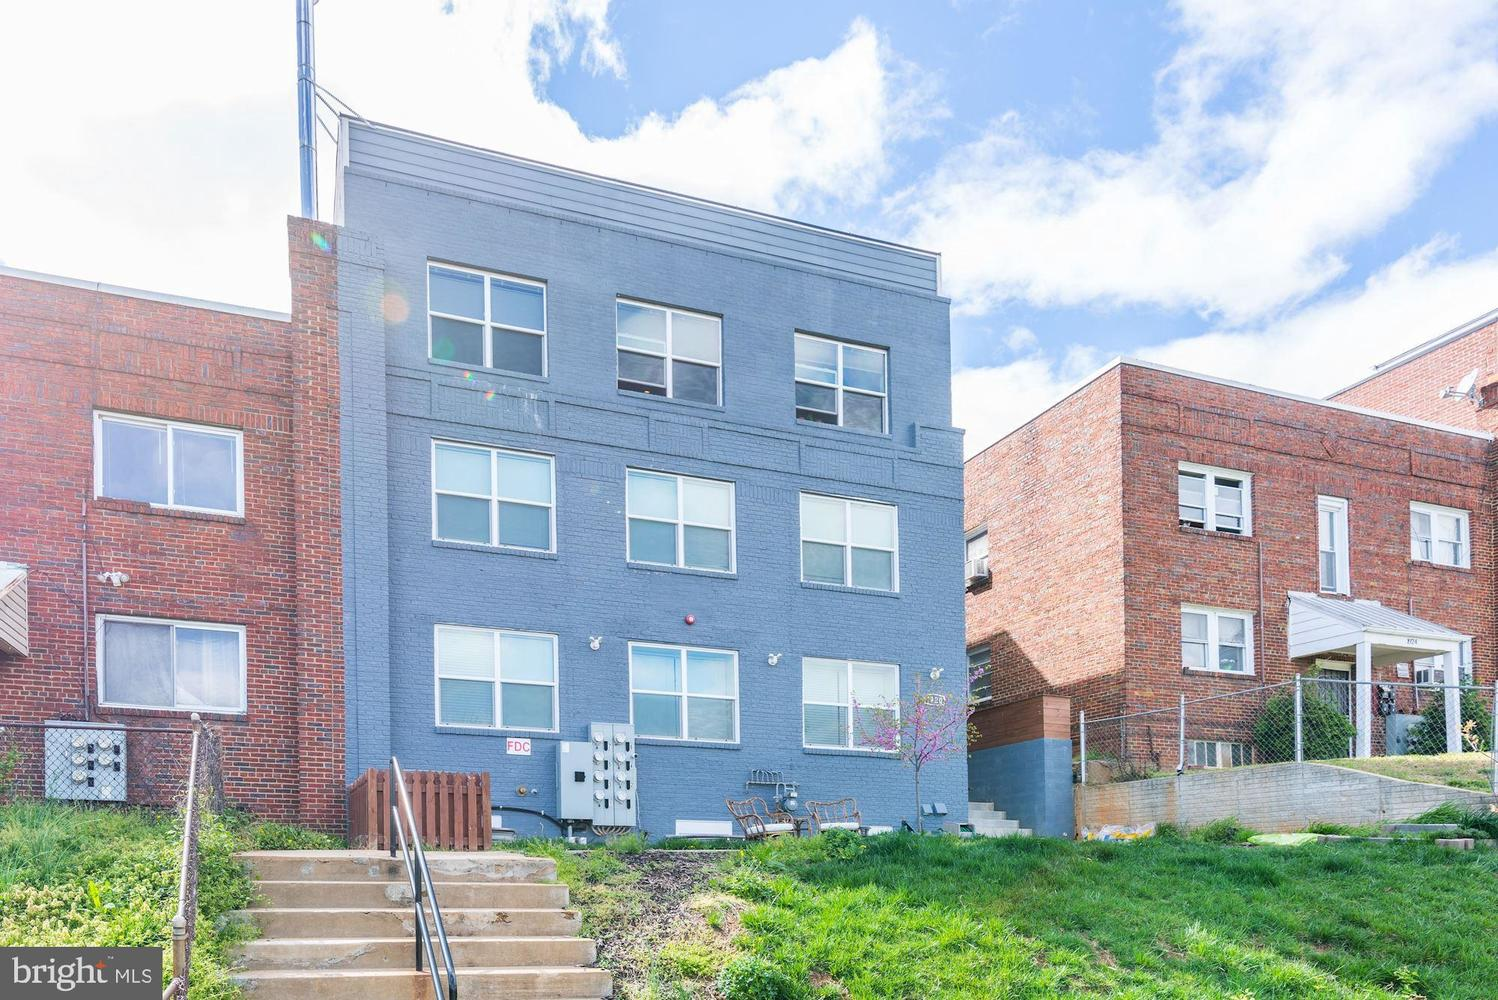 1920 3rd Street Northeast, Unit 1 Washington, DC 20002